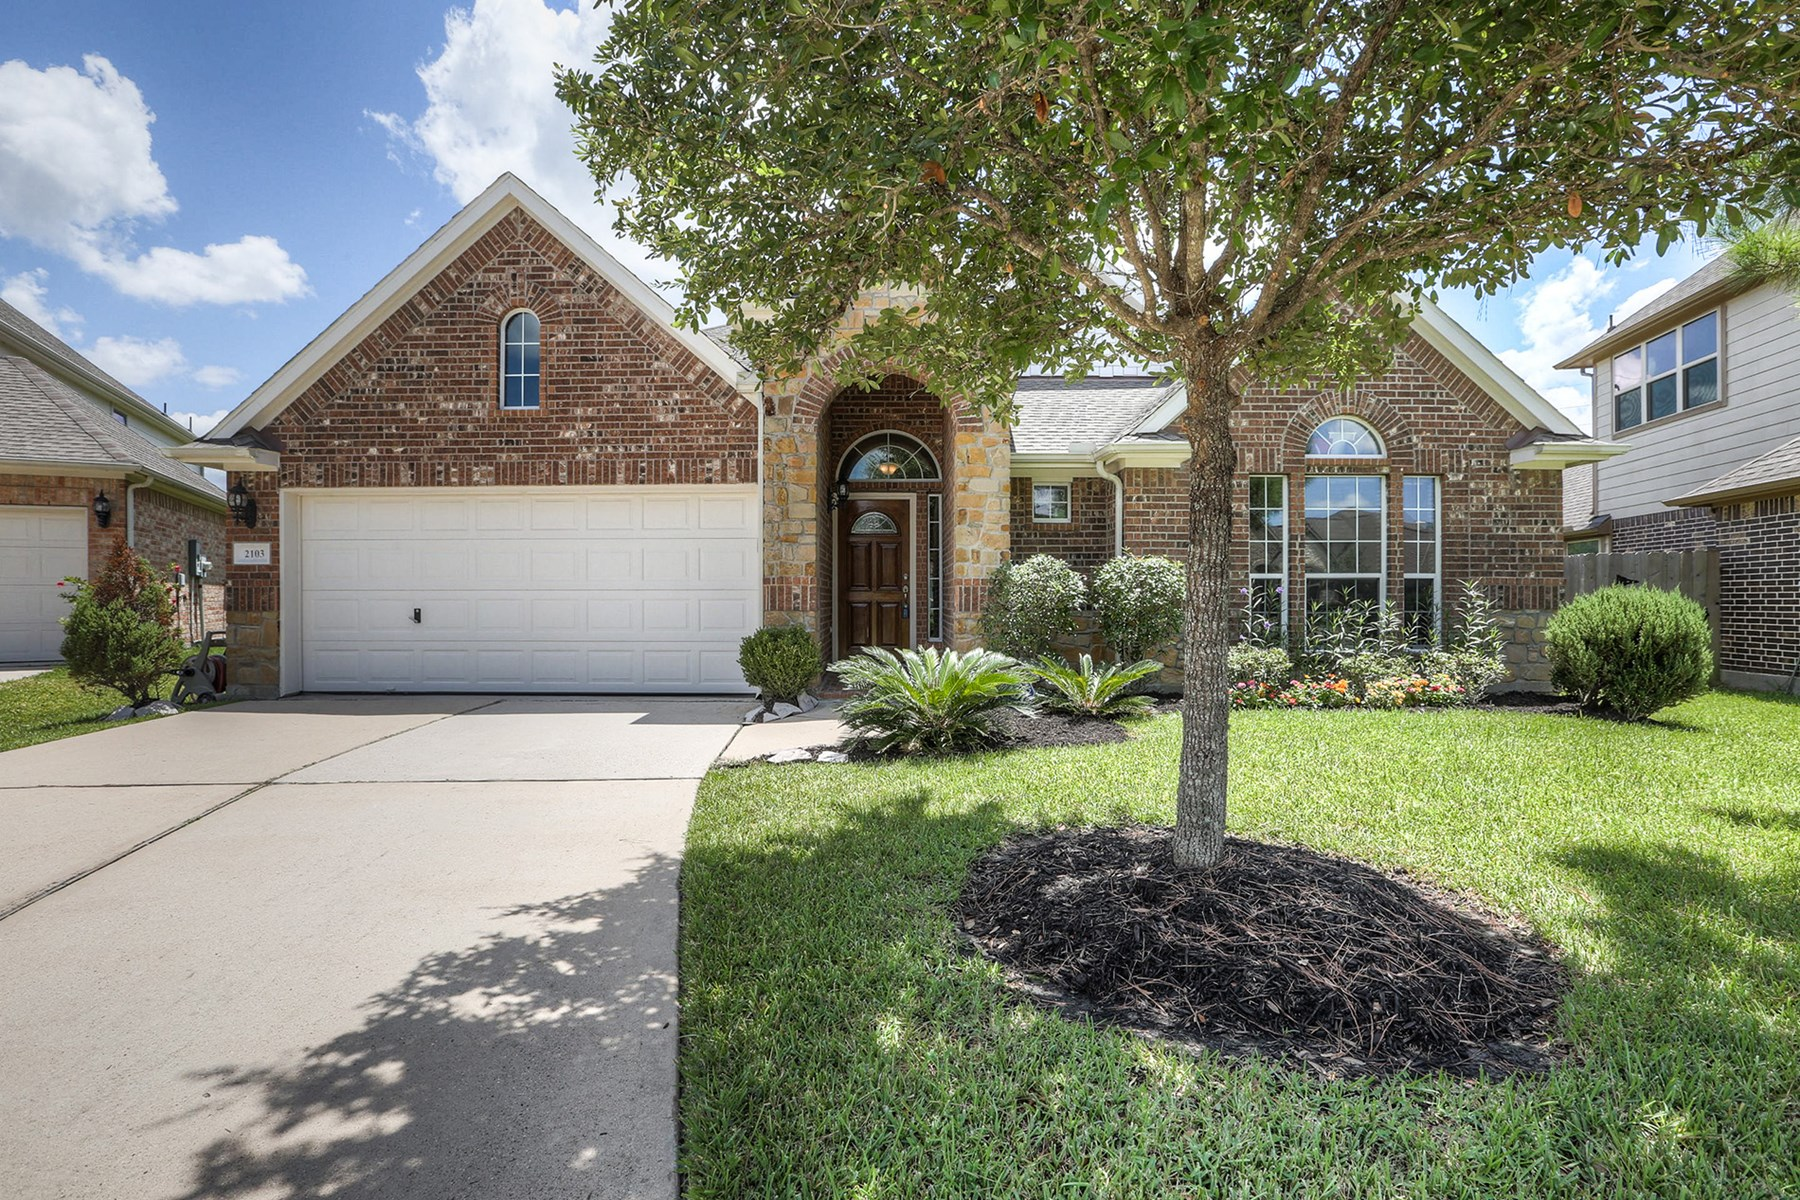 Casa Unifamiliar por un Venta en 2103 Cambridge Bay Pearland, Texas 77584 Estados Unidos